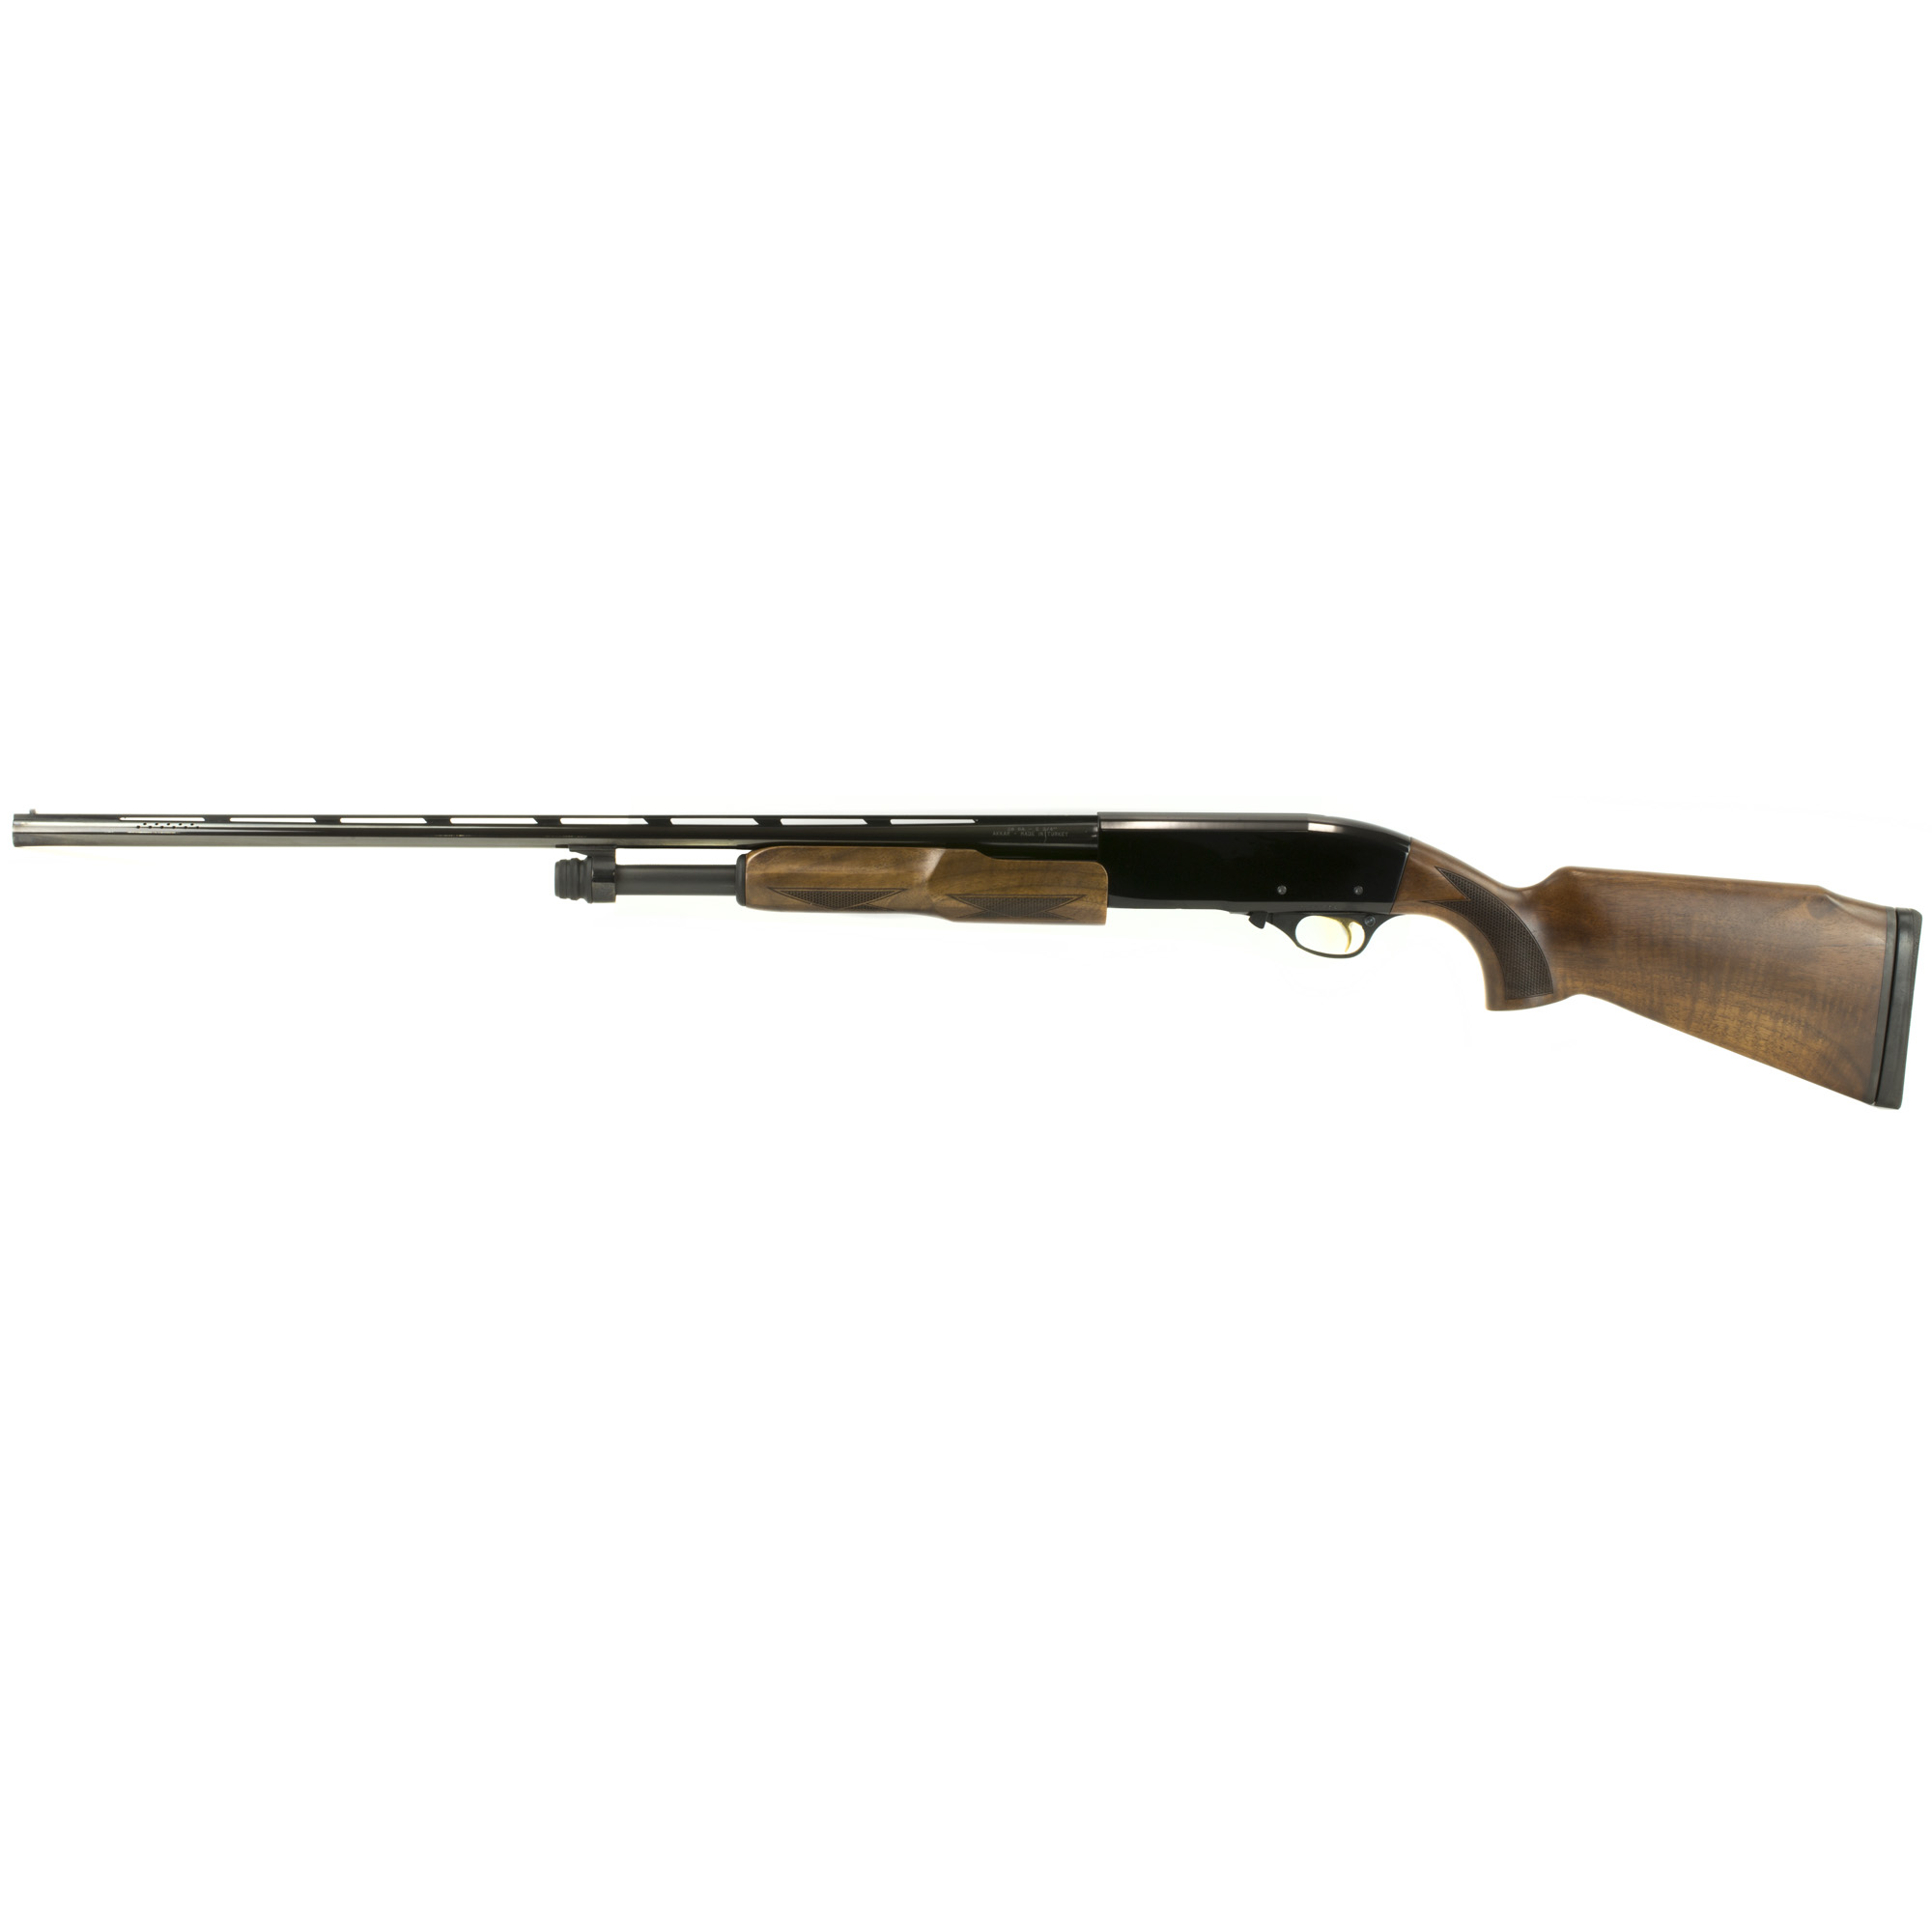 """For those who want a light"""" classy pump gun to carry in the field"""" CZ put together the perfect shotgun. Built on a gauge-specific 7075 aluminum action"""" this 20 or 28 gauge pump has a deep glossy blue finish and select grade Turkish Walnut. A set of interchangeable chokes lets you tune constriction and the full forend and pistol grip help make this little shotgun feel good in the hands."""